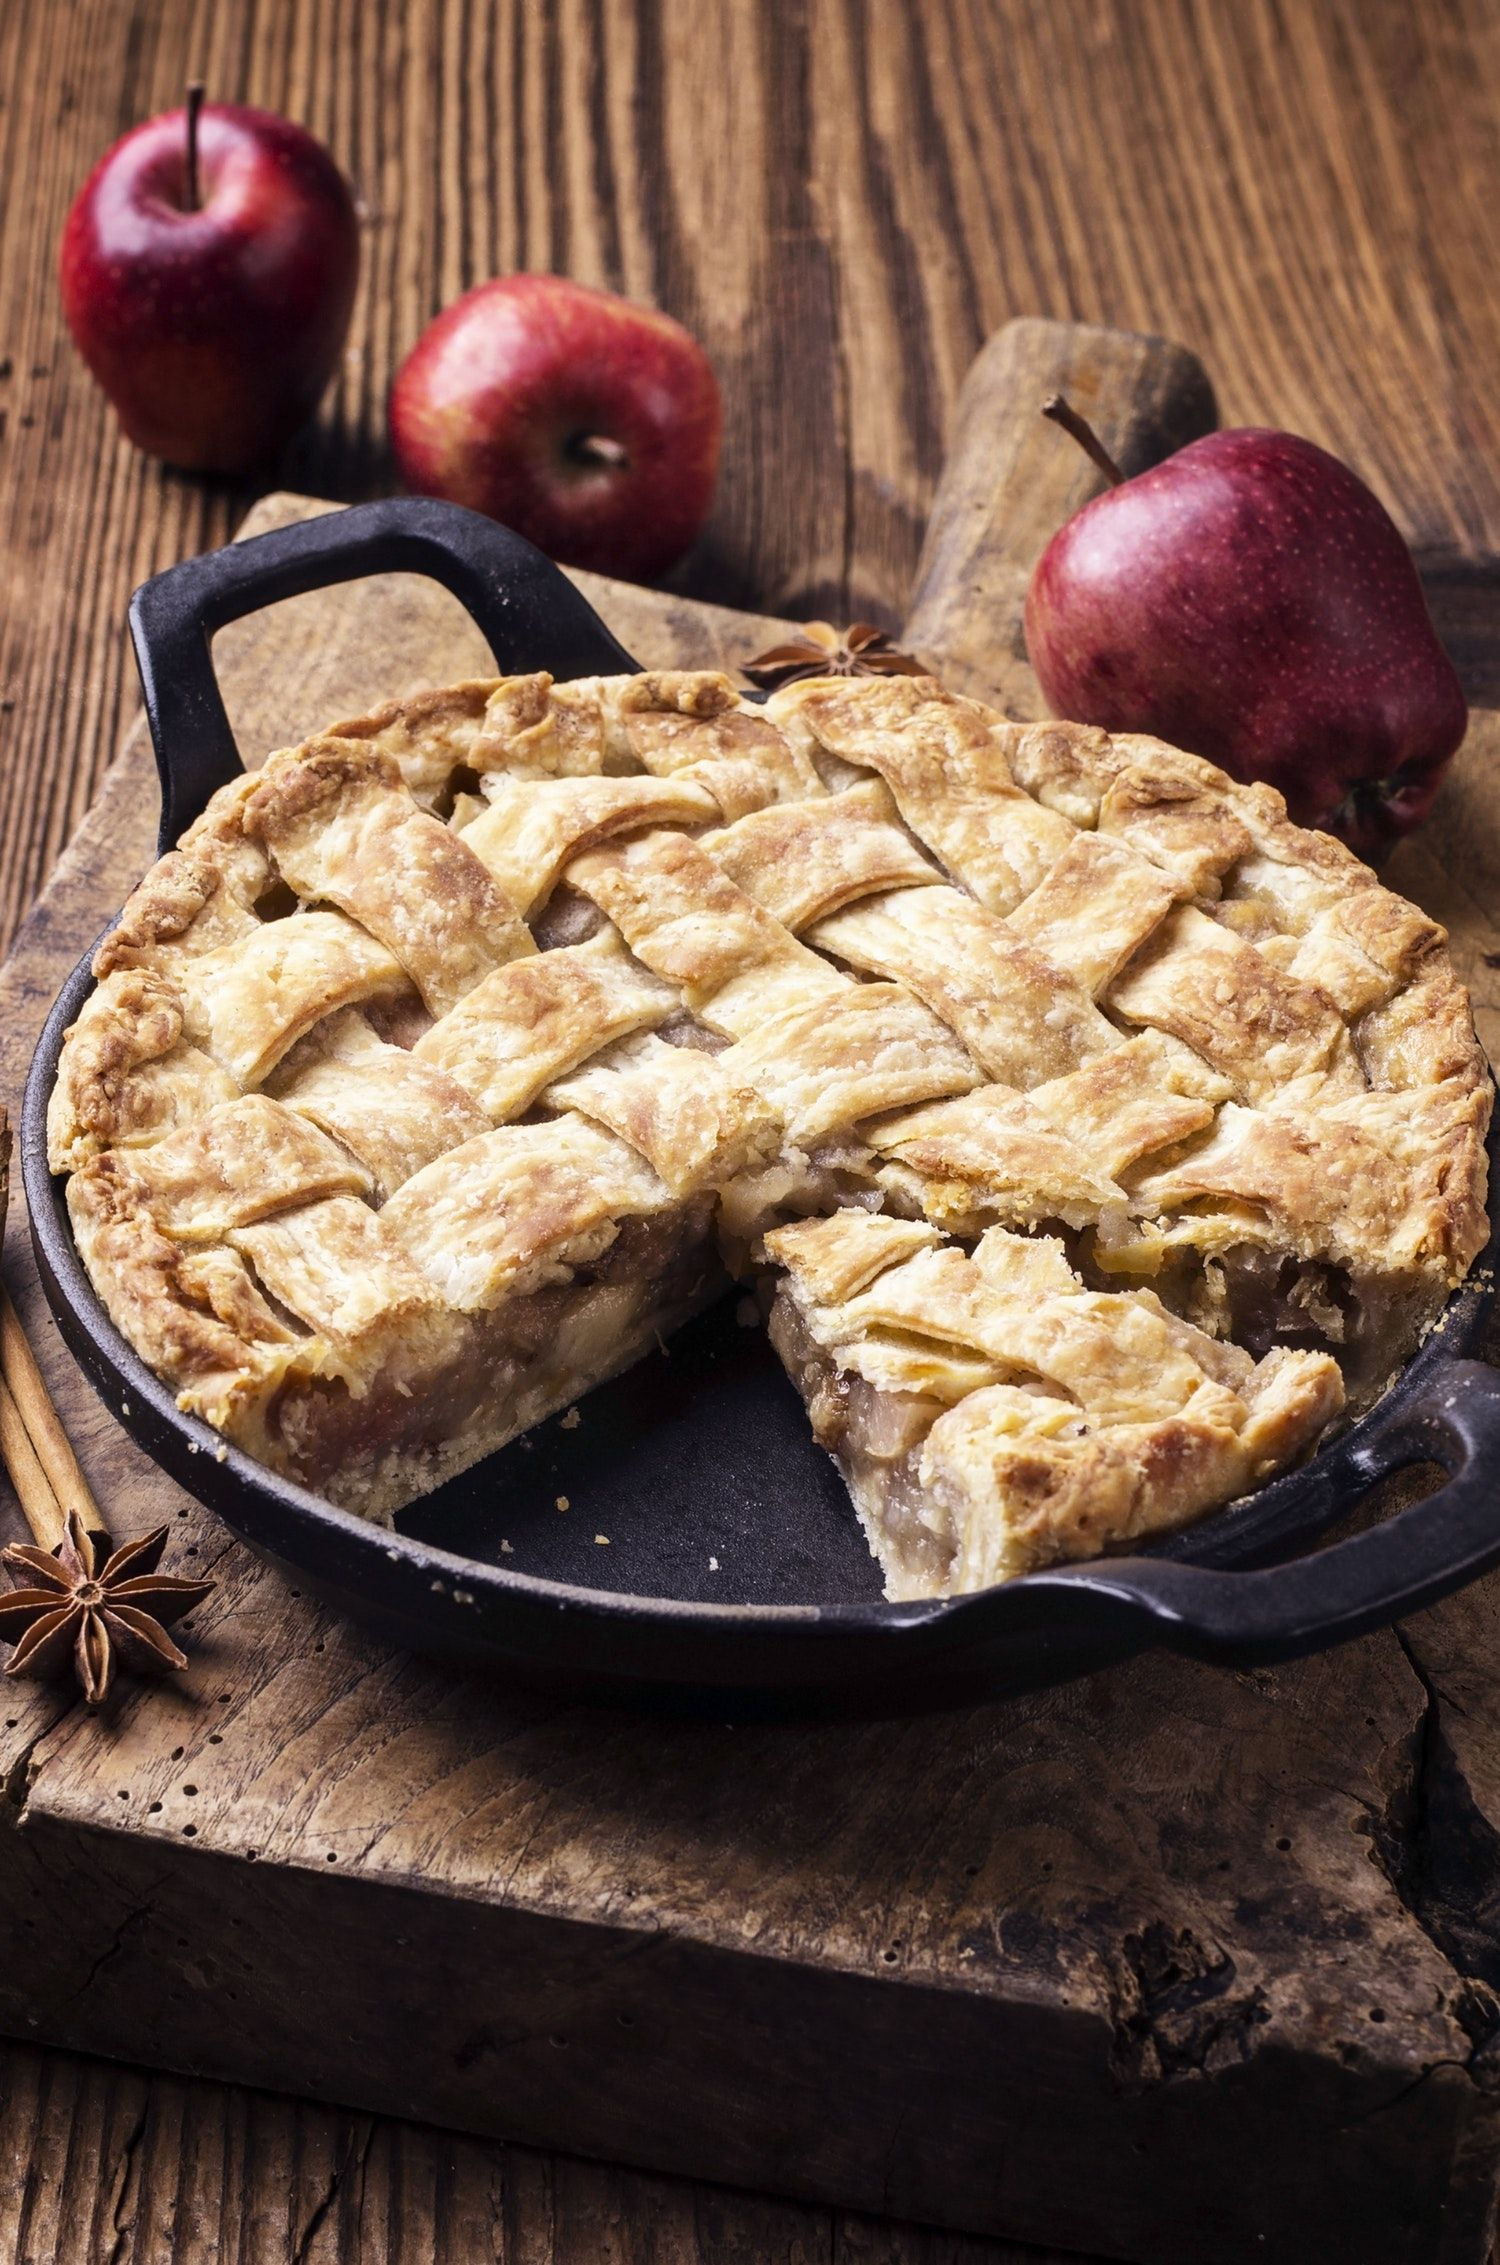 5 Ways To Prevent Soggy Pie Crust With Images Fruit Pie Crust